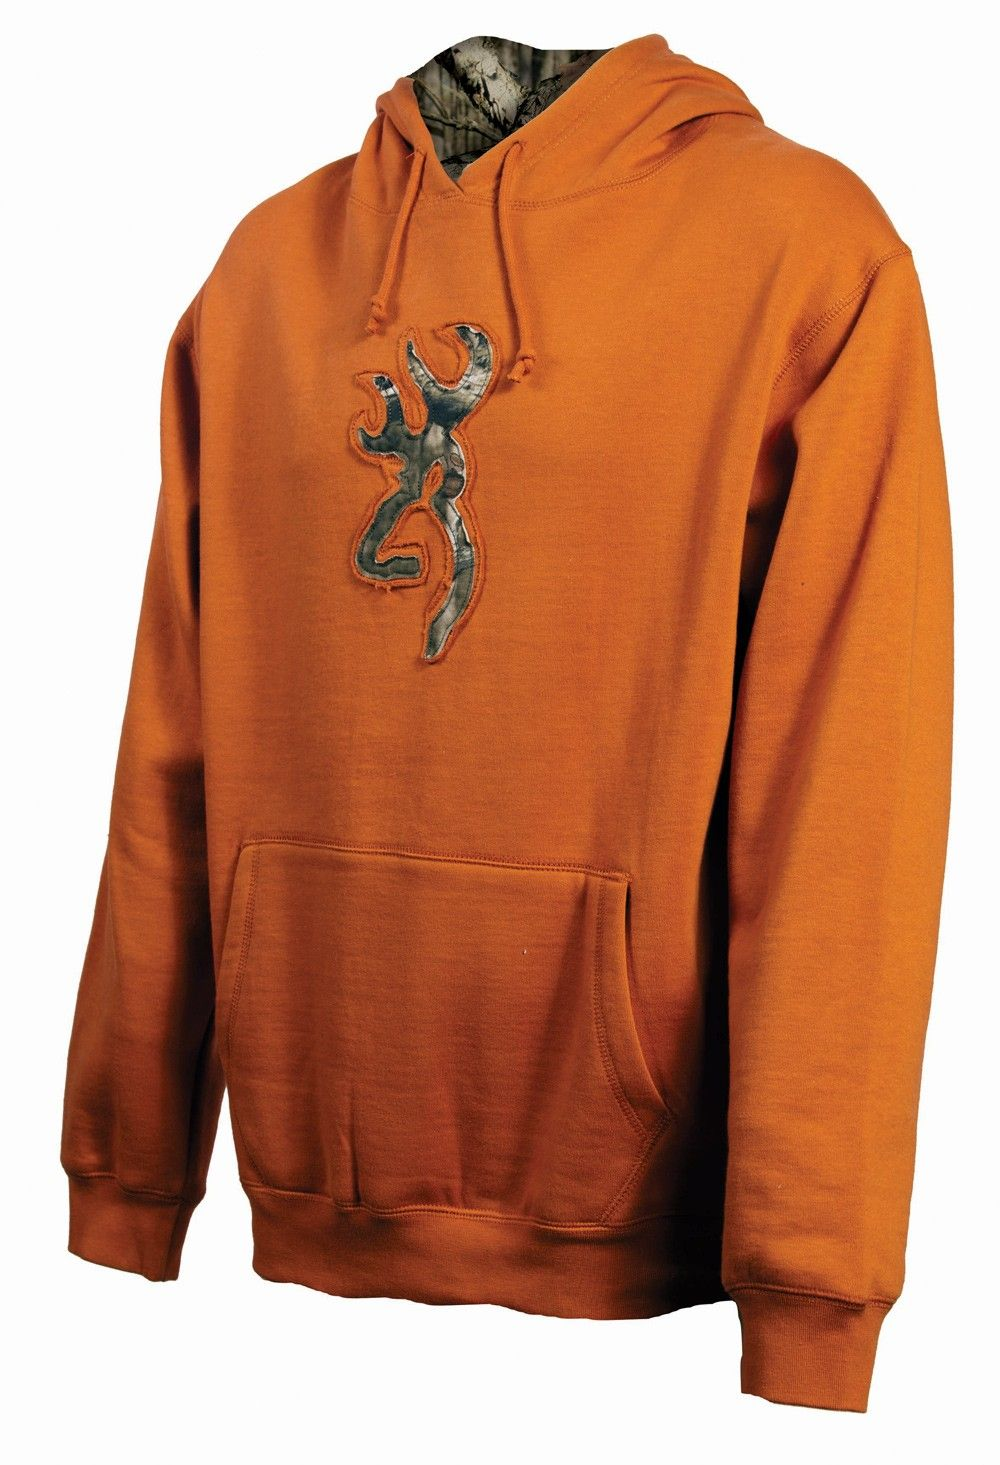 9a1c6843a293c Men's Browning Buckmark Orange Hoodie. Mmmmm Cozy. $49.95 | His Camo ...